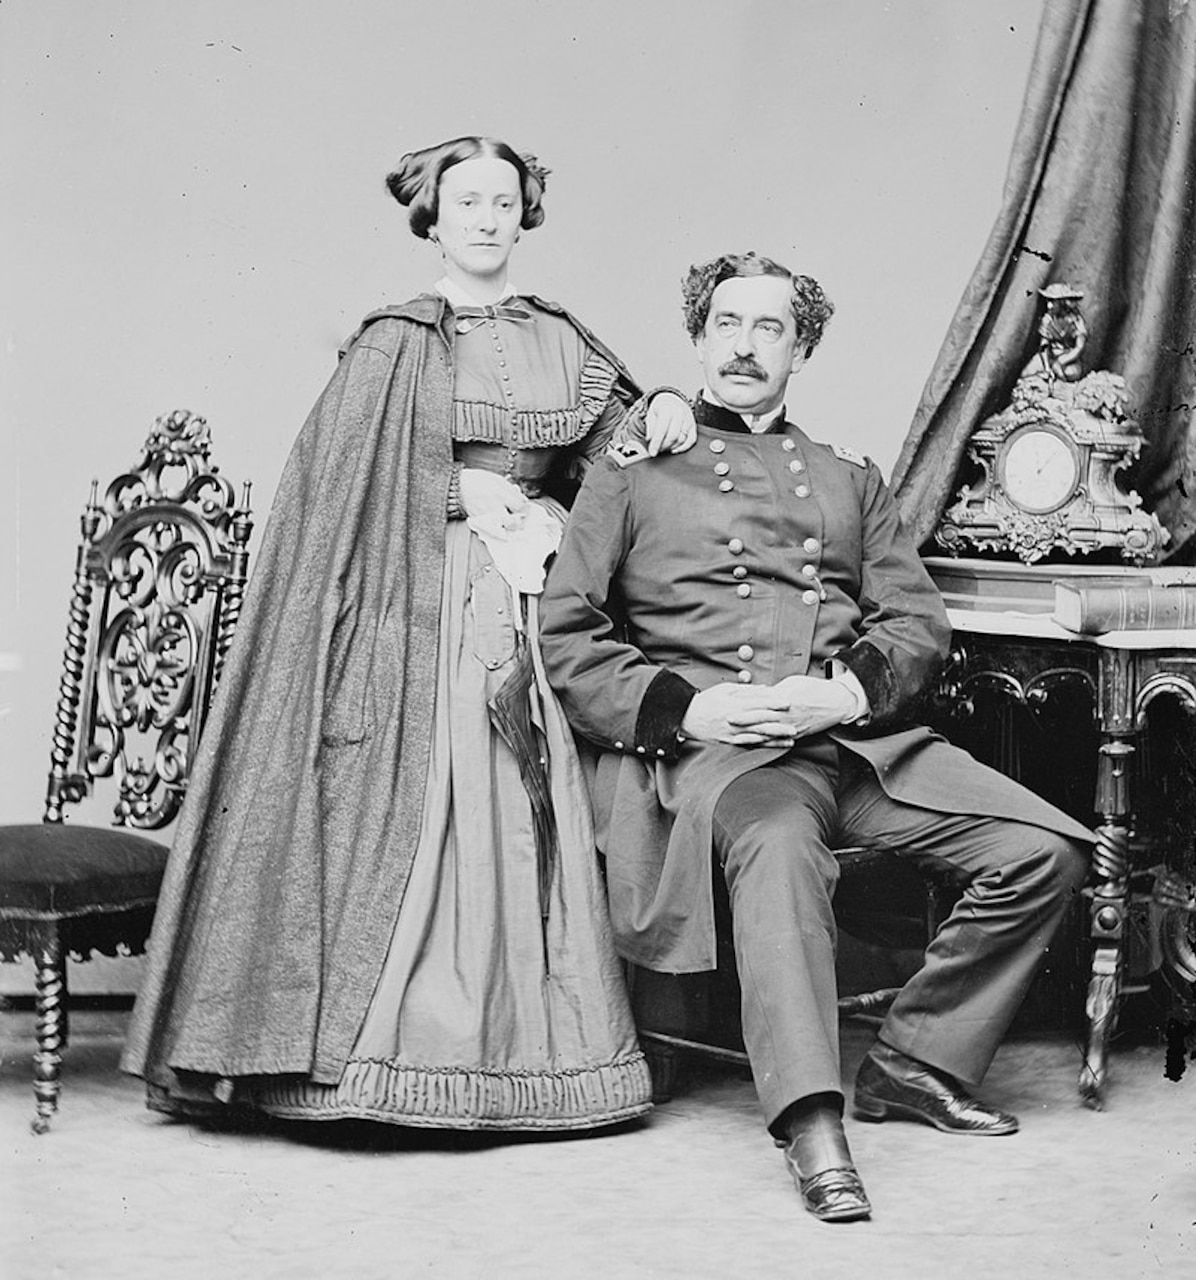 A mid-19th century couple pose for a portrait.